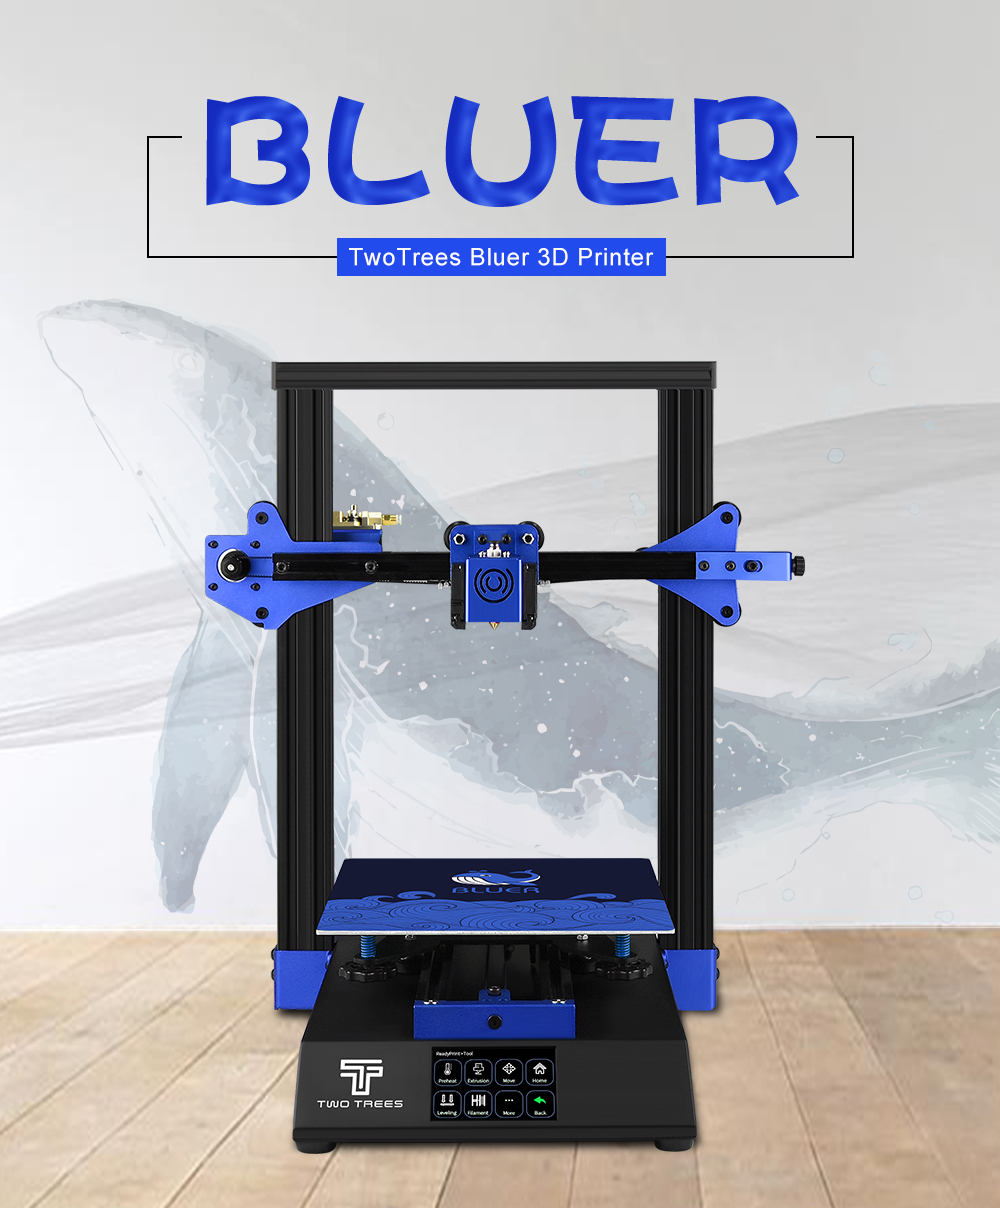 BLUER TWO TREES 3D Printer for High Precision Printing with Auto Leveling and Resume Power Failure 5